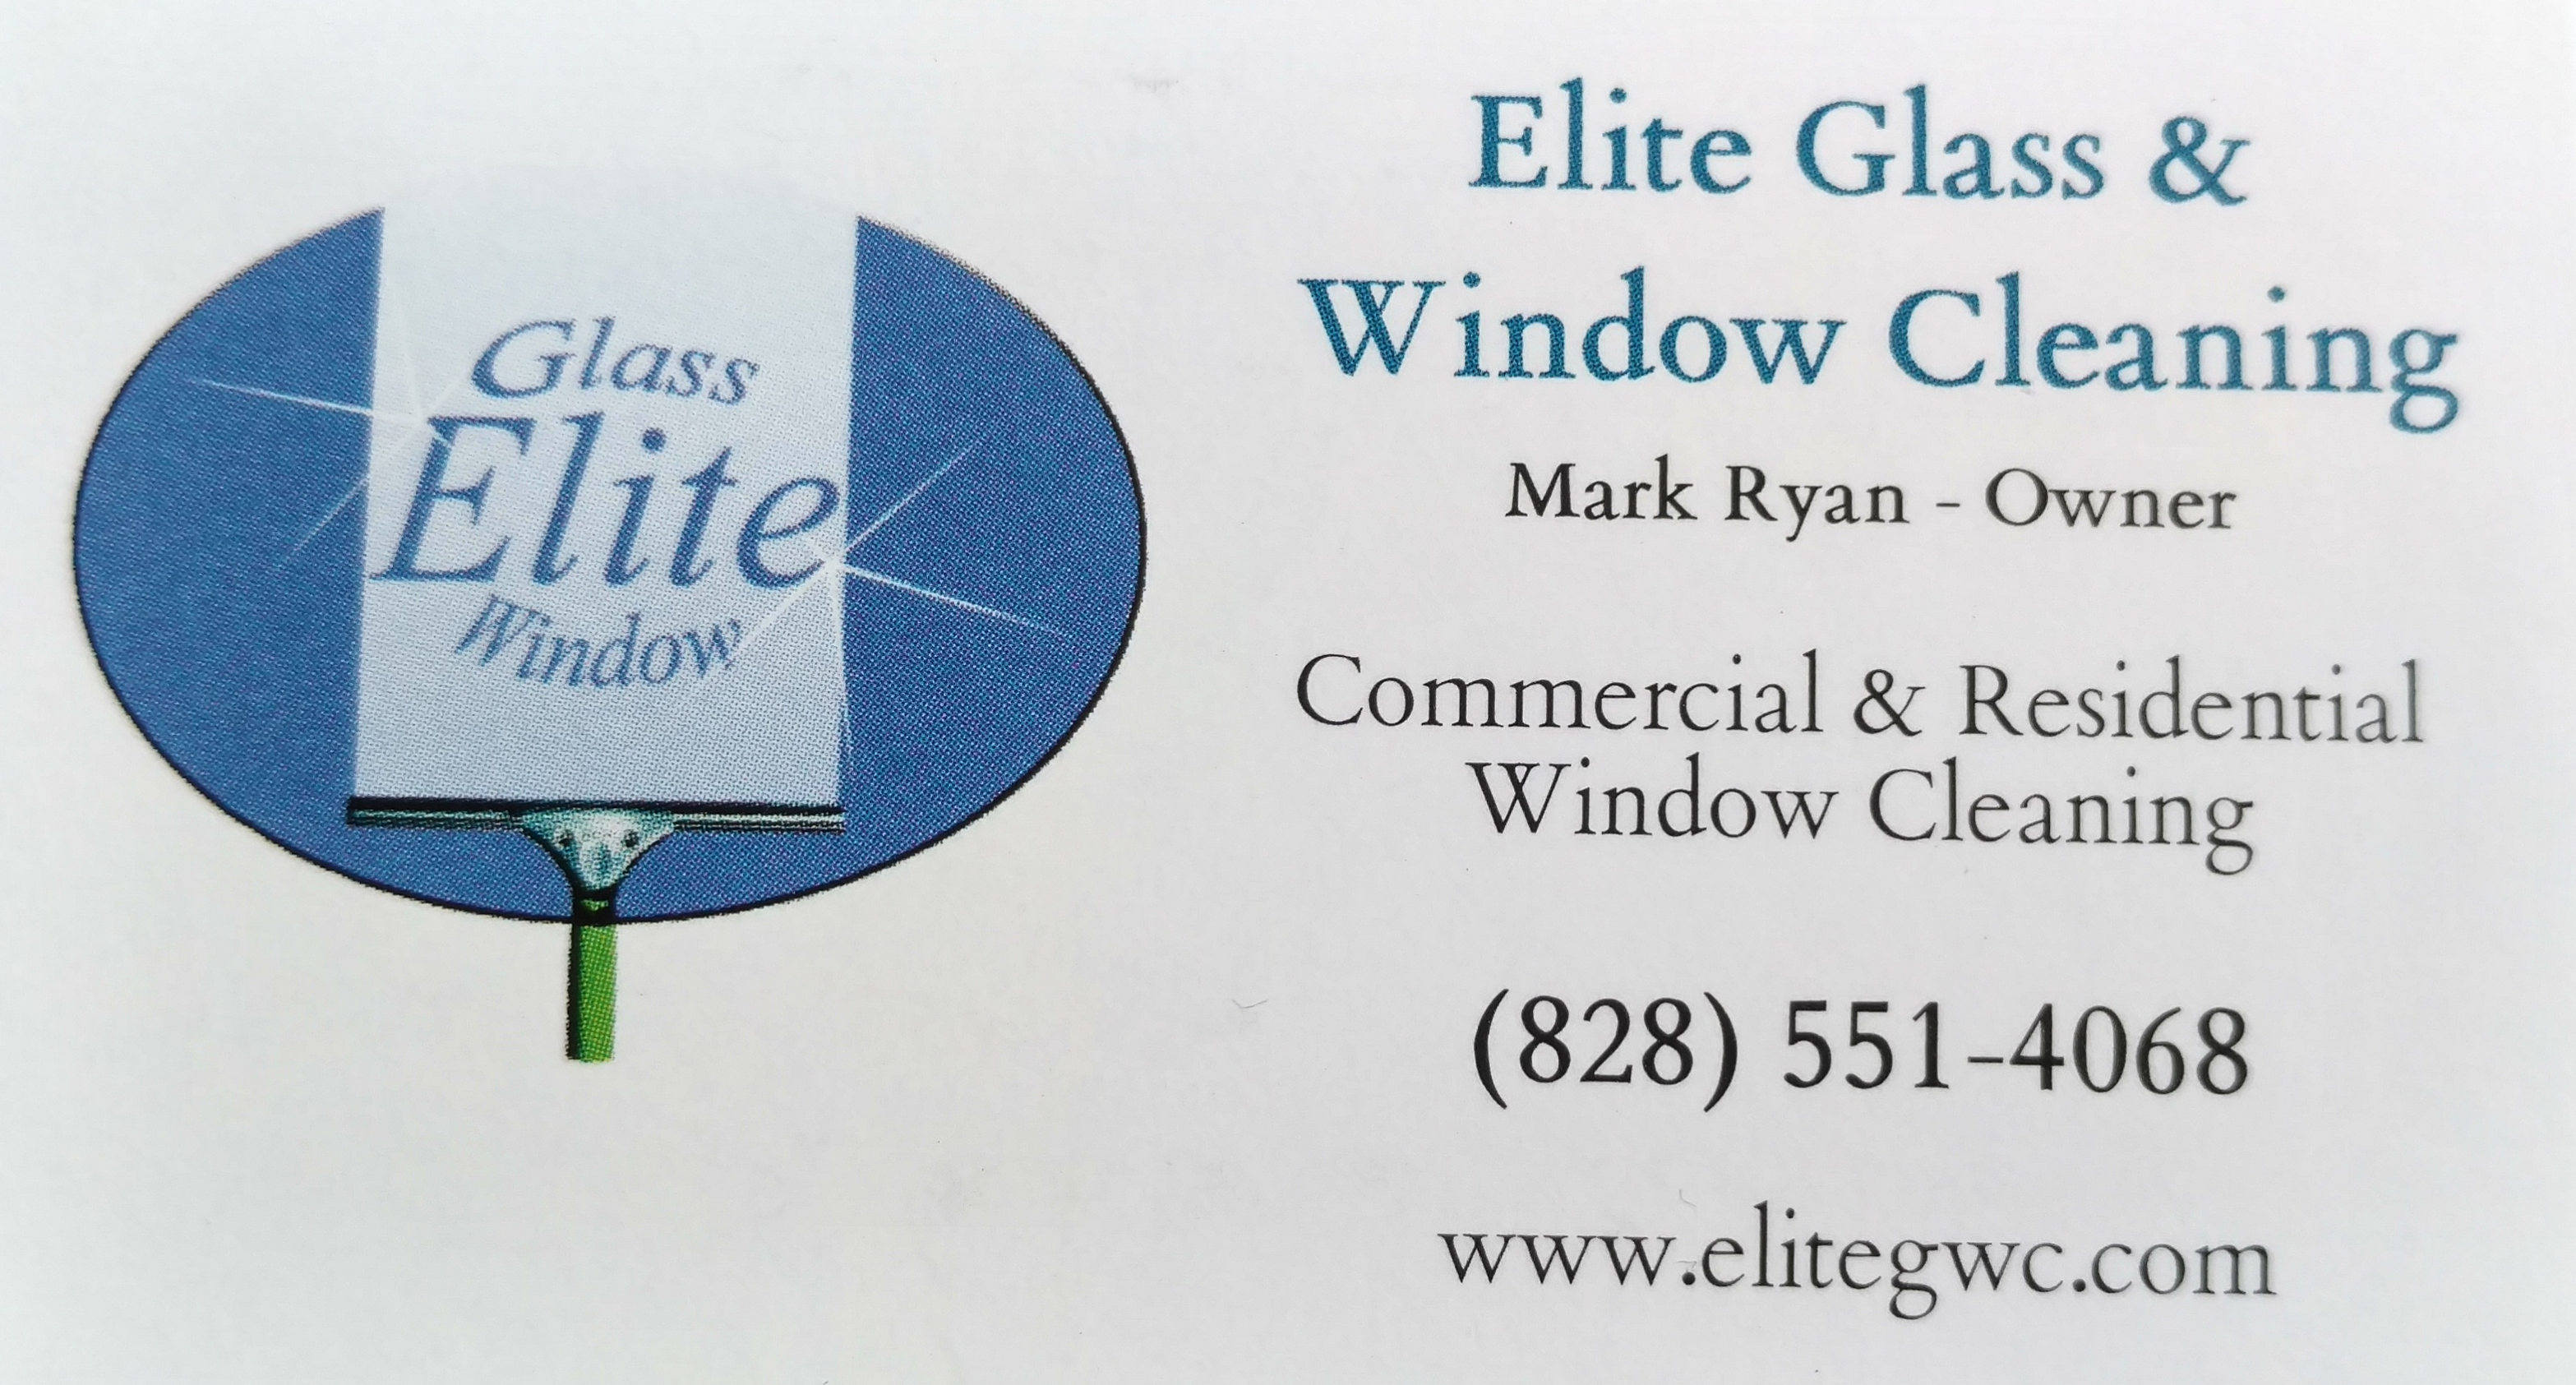 Elite Glass & Window Cleaning